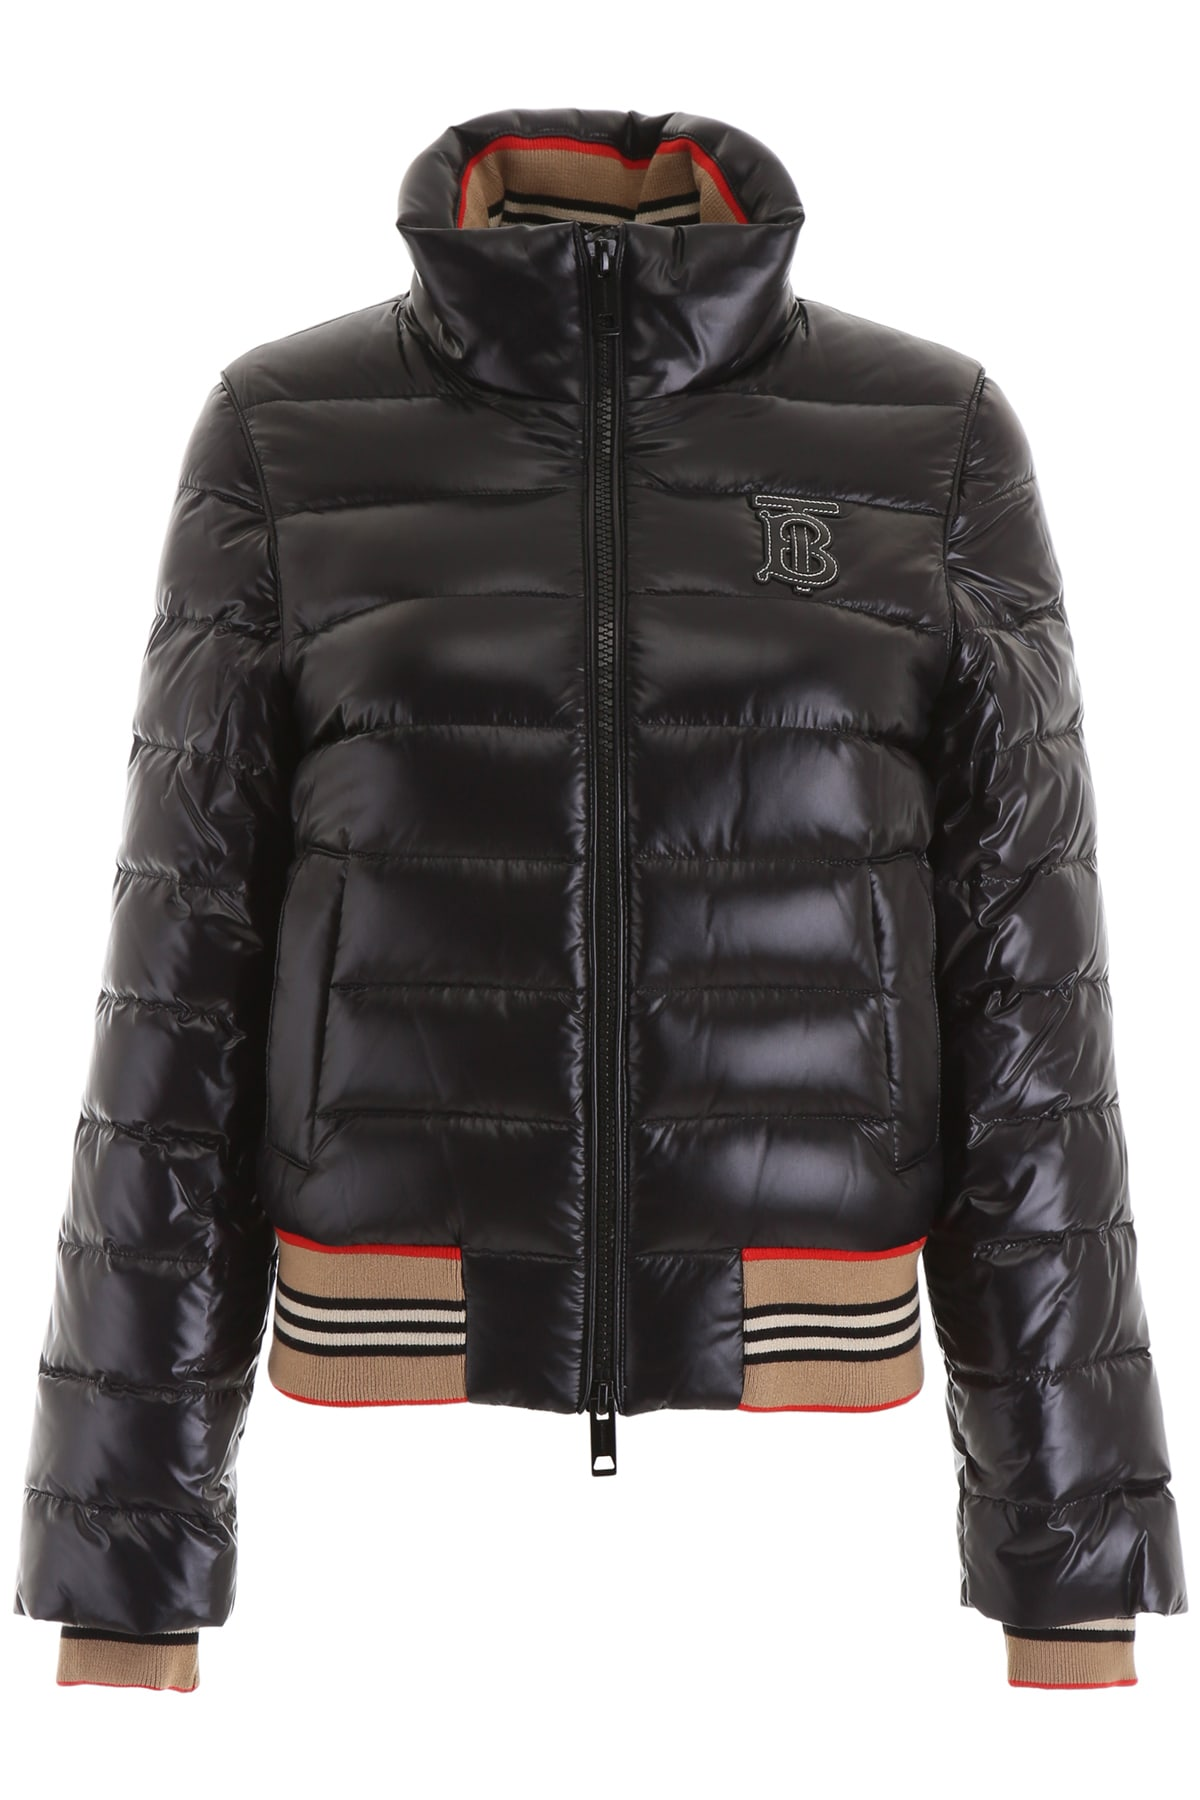 Burberry Hessle Puffer Jacket